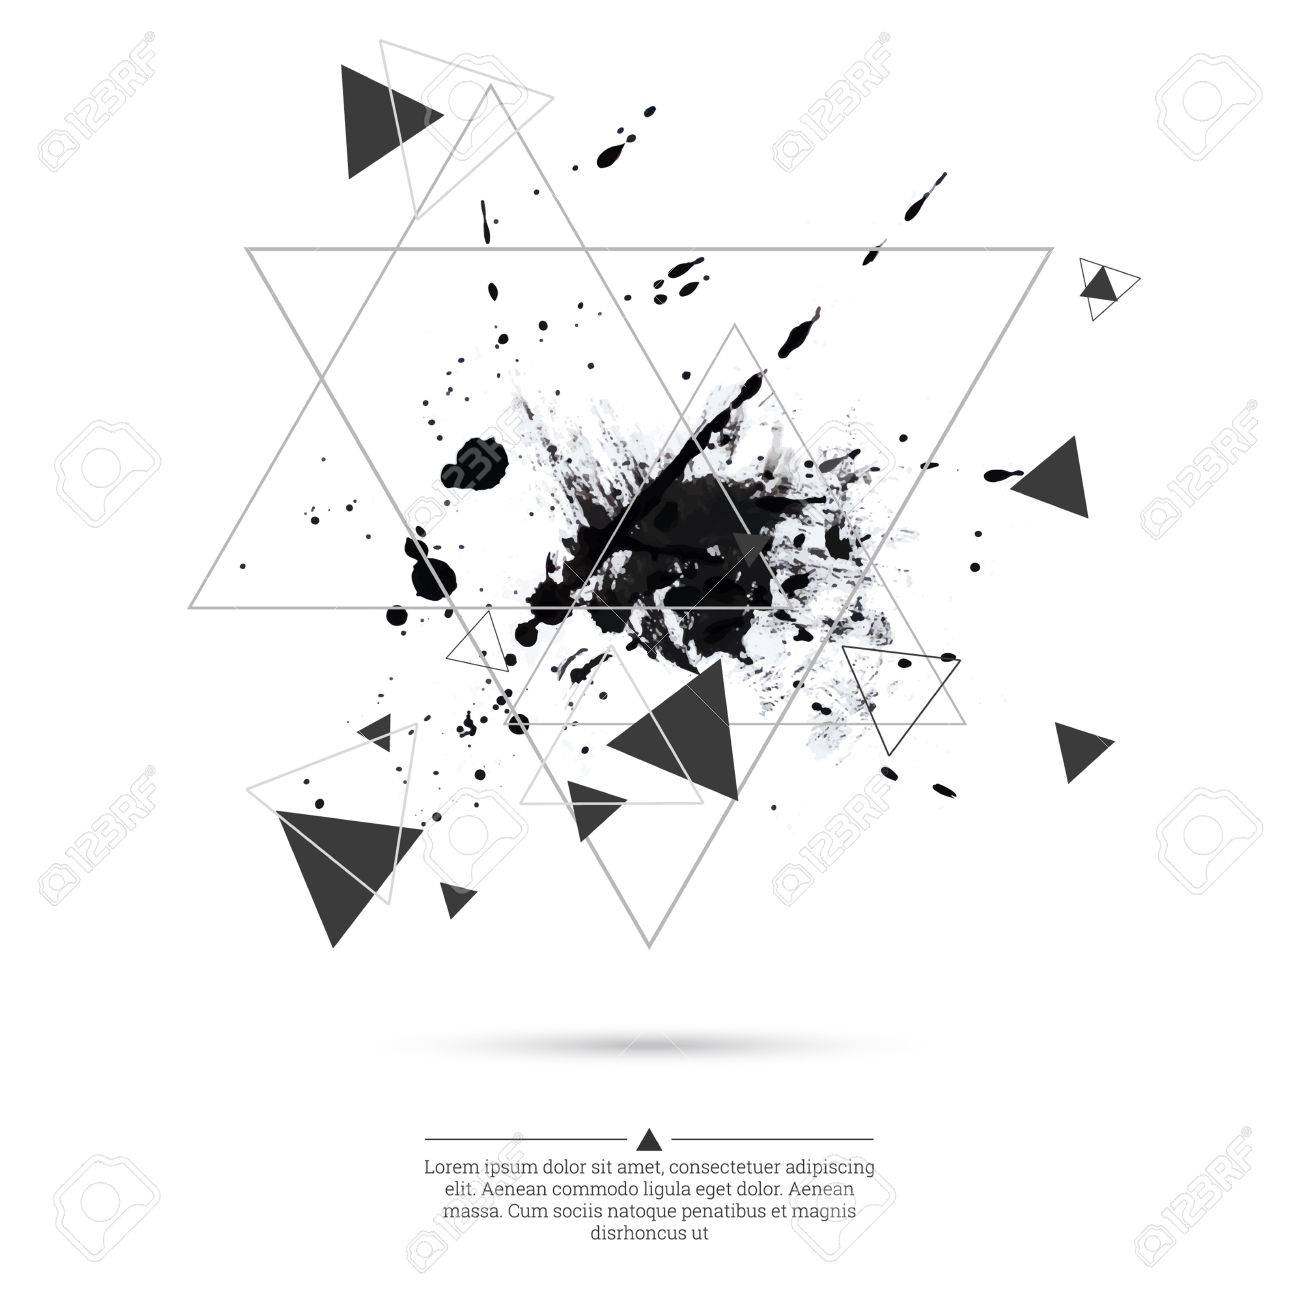 Shirt design ink - Abstract Background With Hipster Triangles And Ink Splatter Black Drop Triangle Pattern Background